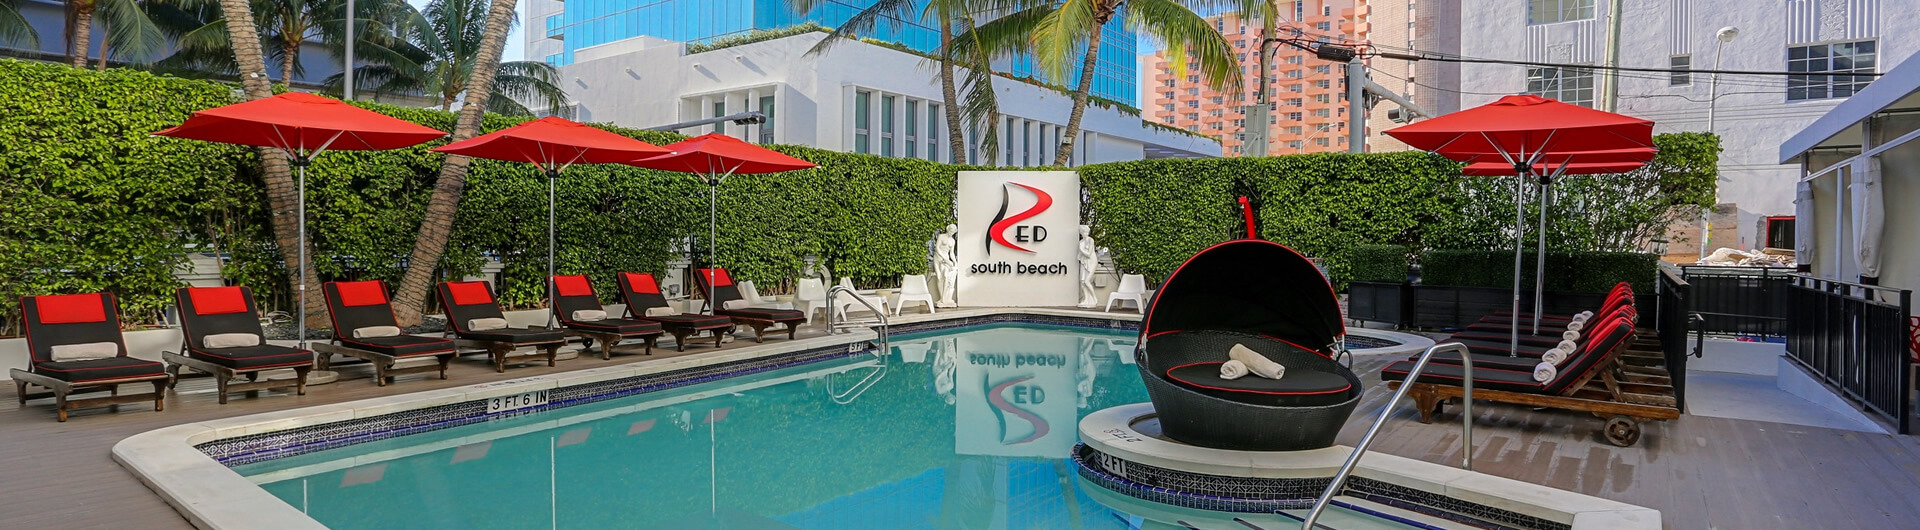 Fl Red South Beach Pool Hotel